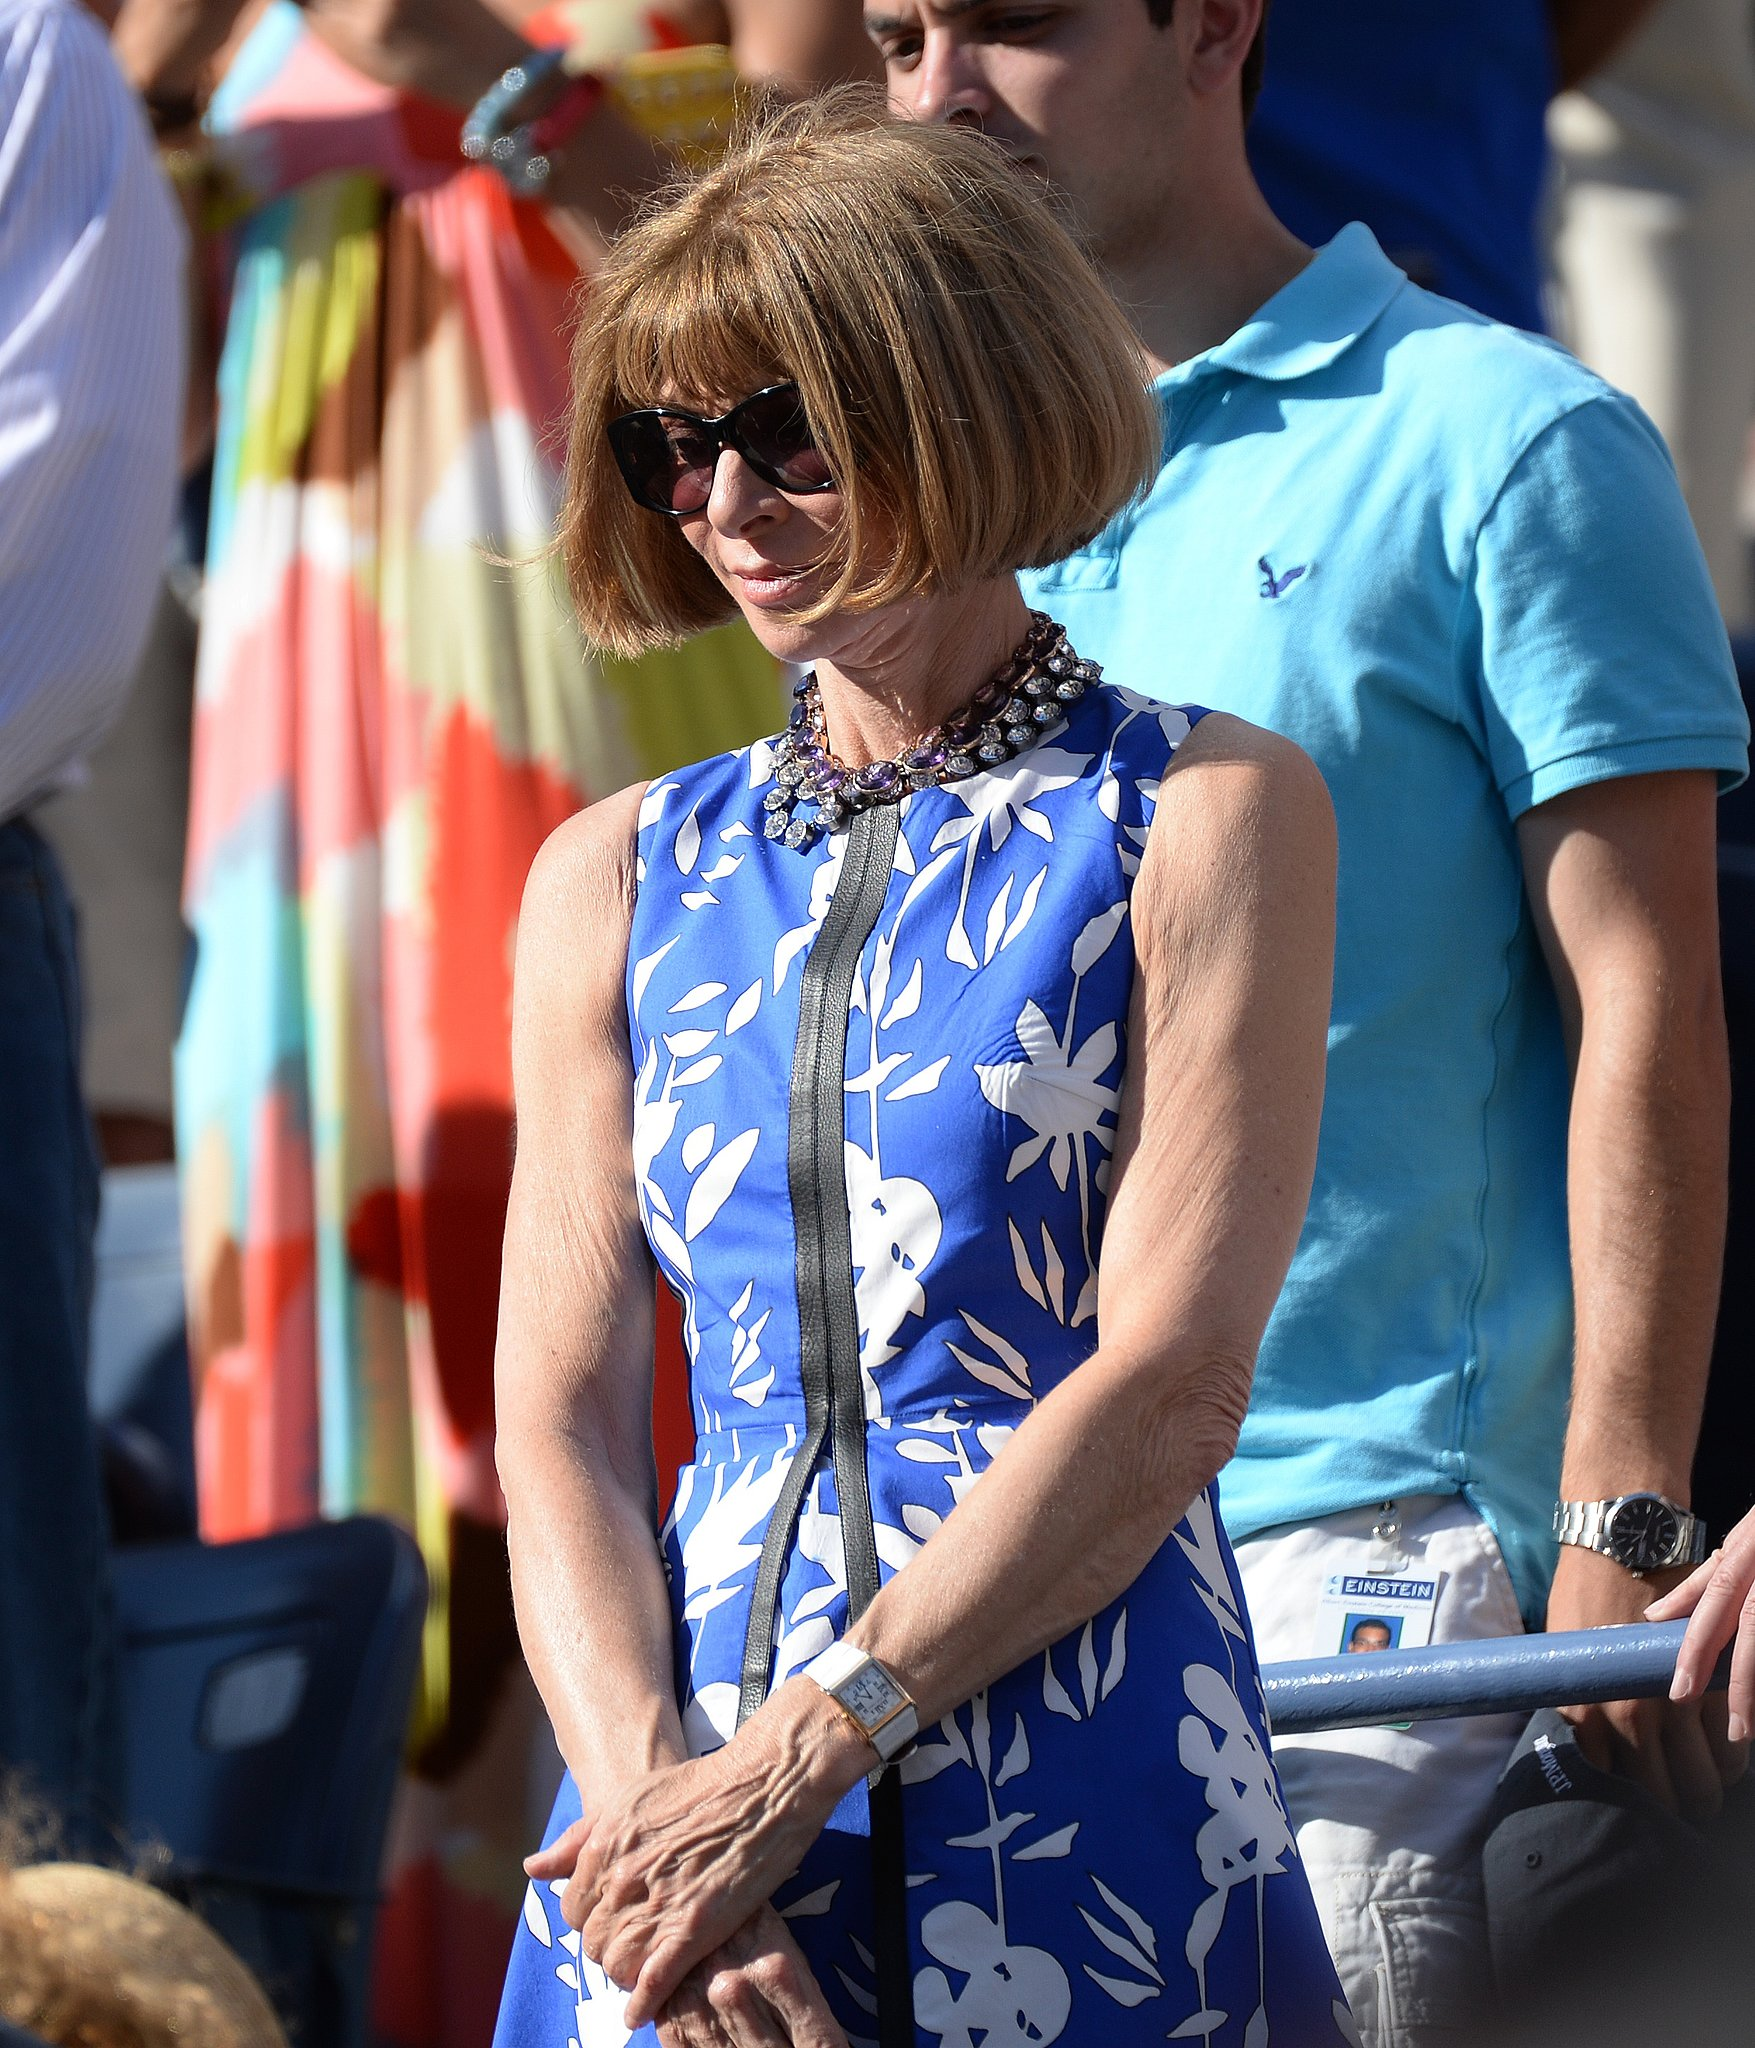 Anna Wintour took a break from New York Fashion Week to take in tennis at the US Open in a blue printed dress. She didn't even bother to change after attending Victoria Beckham's Spring 2014 show, which took place just hours